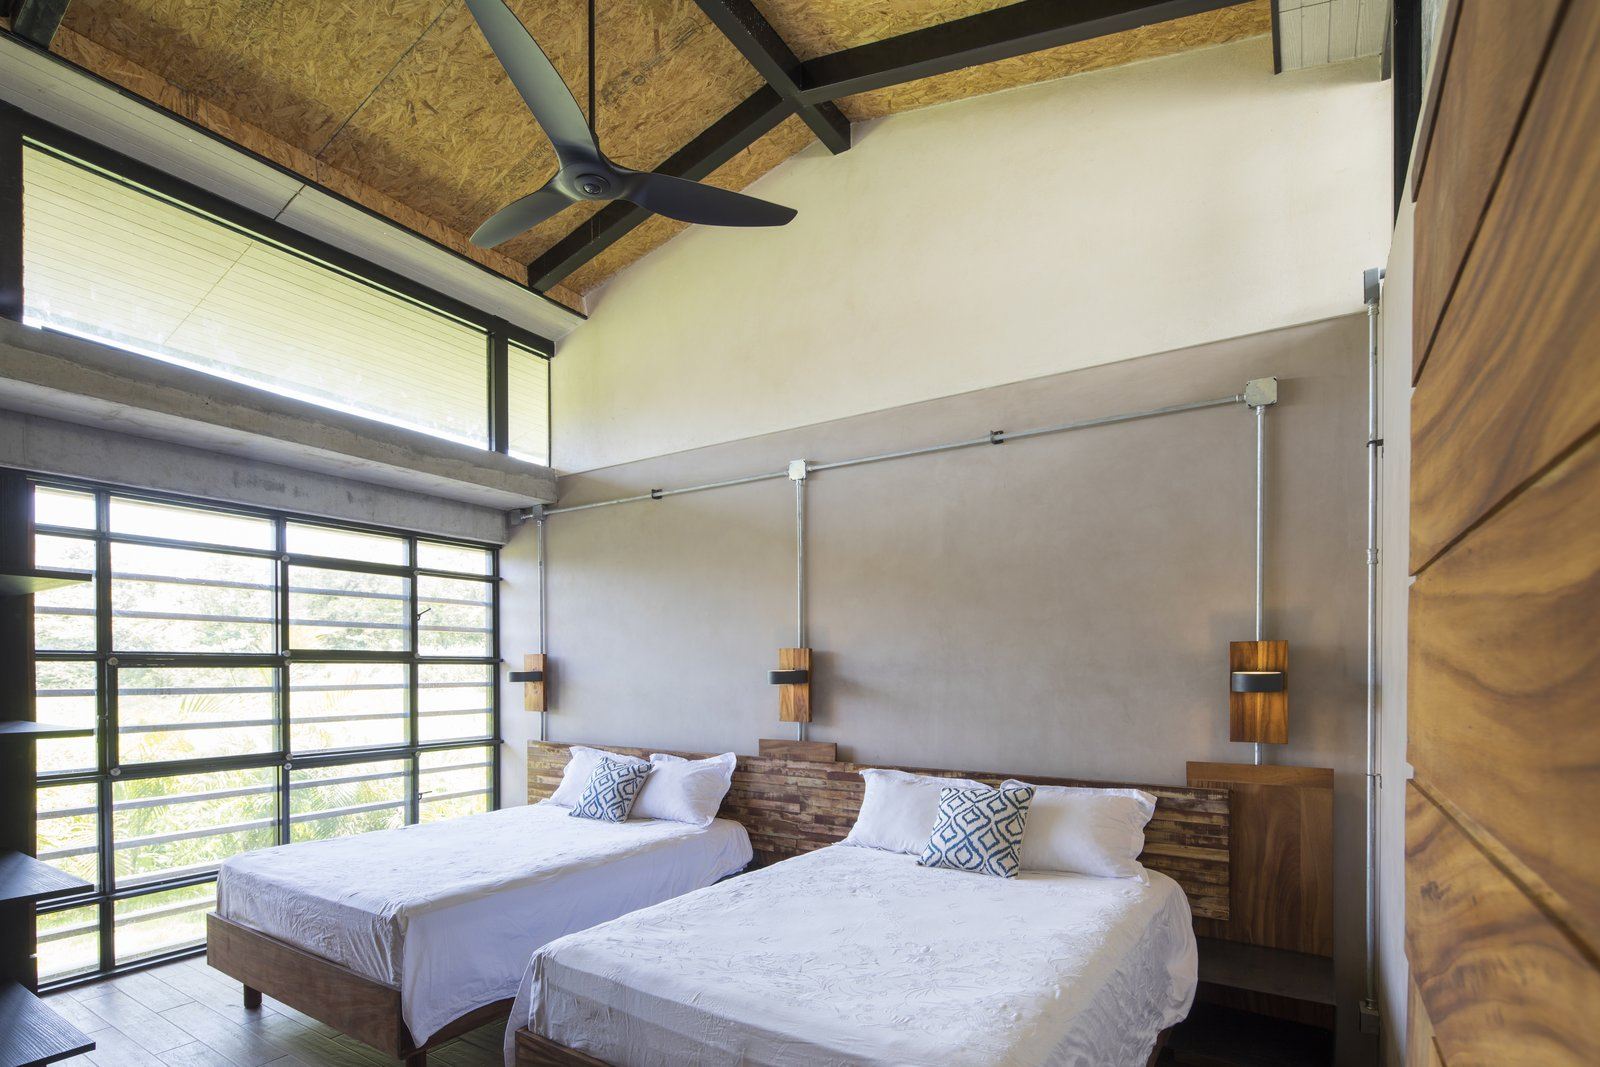 Floor to ceiling glass windows bring the green outdoors into the bedroom.